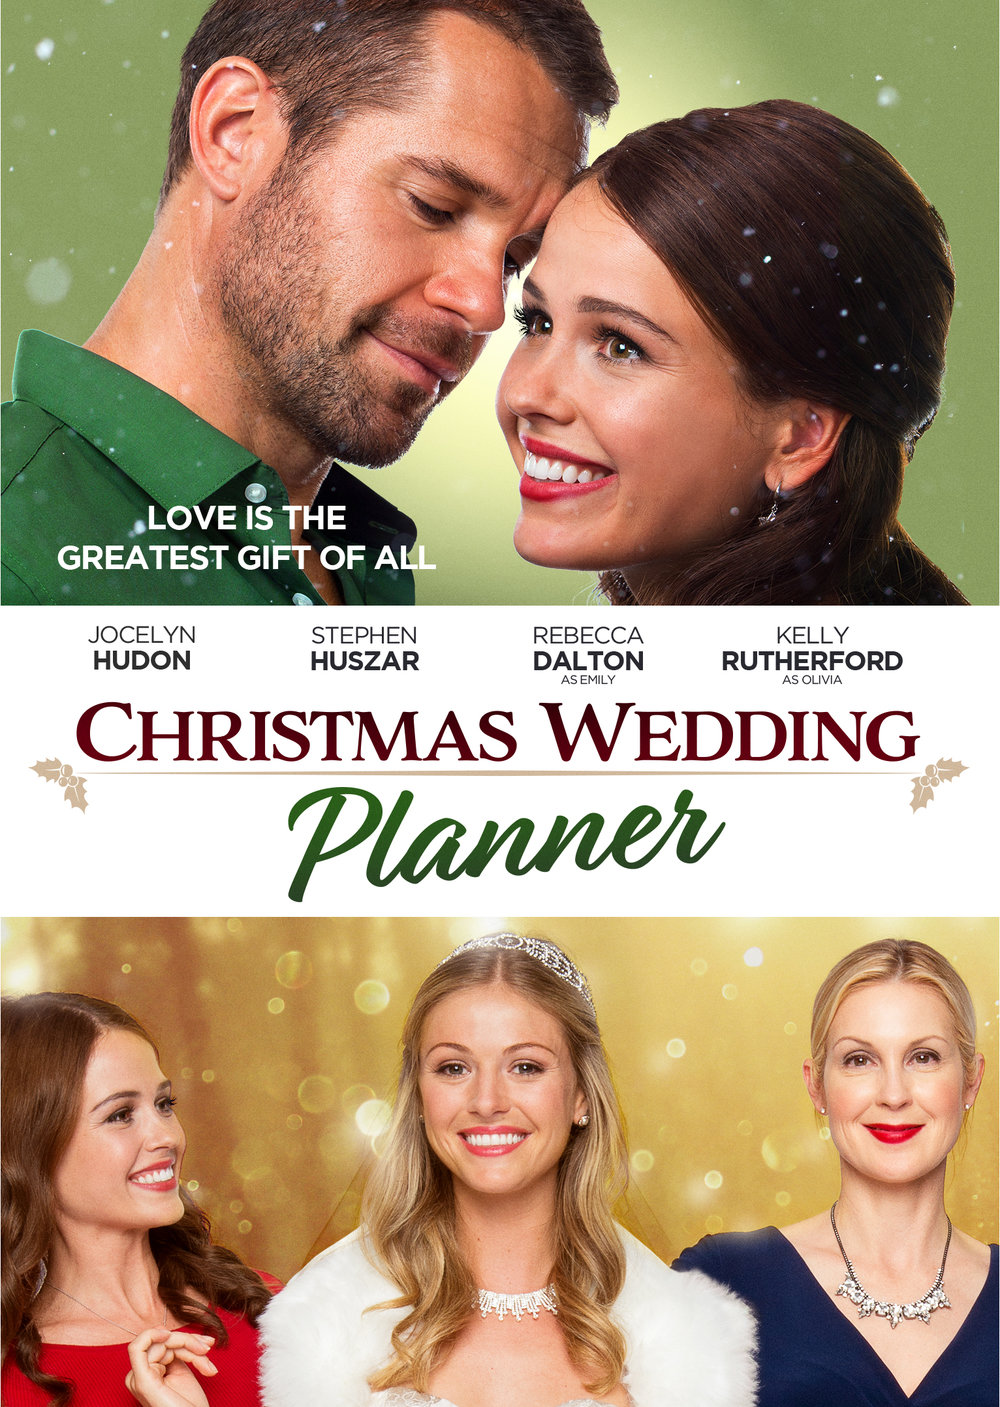 Christmas Wedding Planner.jpg